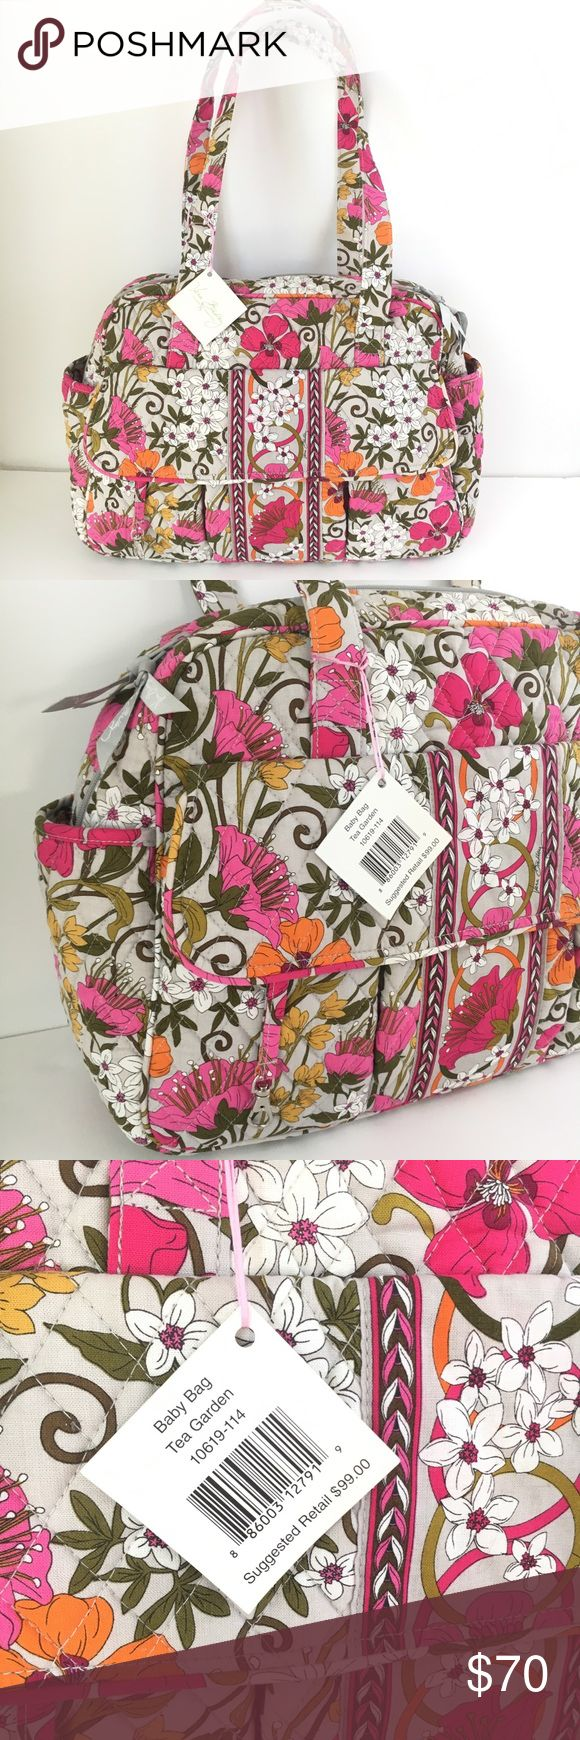 """NWT Vera Bradley baby bag diaper bag tea garden Vera Bradley NWT baby bag in tea garden pattern. Diaper bag I ncludes terry cloth covered changing pad. 11 interior and exterior pockets, including a zippered one on back side. Lined interior for easy cleaning. Brand new with tags. Approximate measurements: 16"""" x 11.75"""" x 5.5"""". 12"""" strap drop. I love bundles and offers! Vera Bradley Bags Baby Bags"""